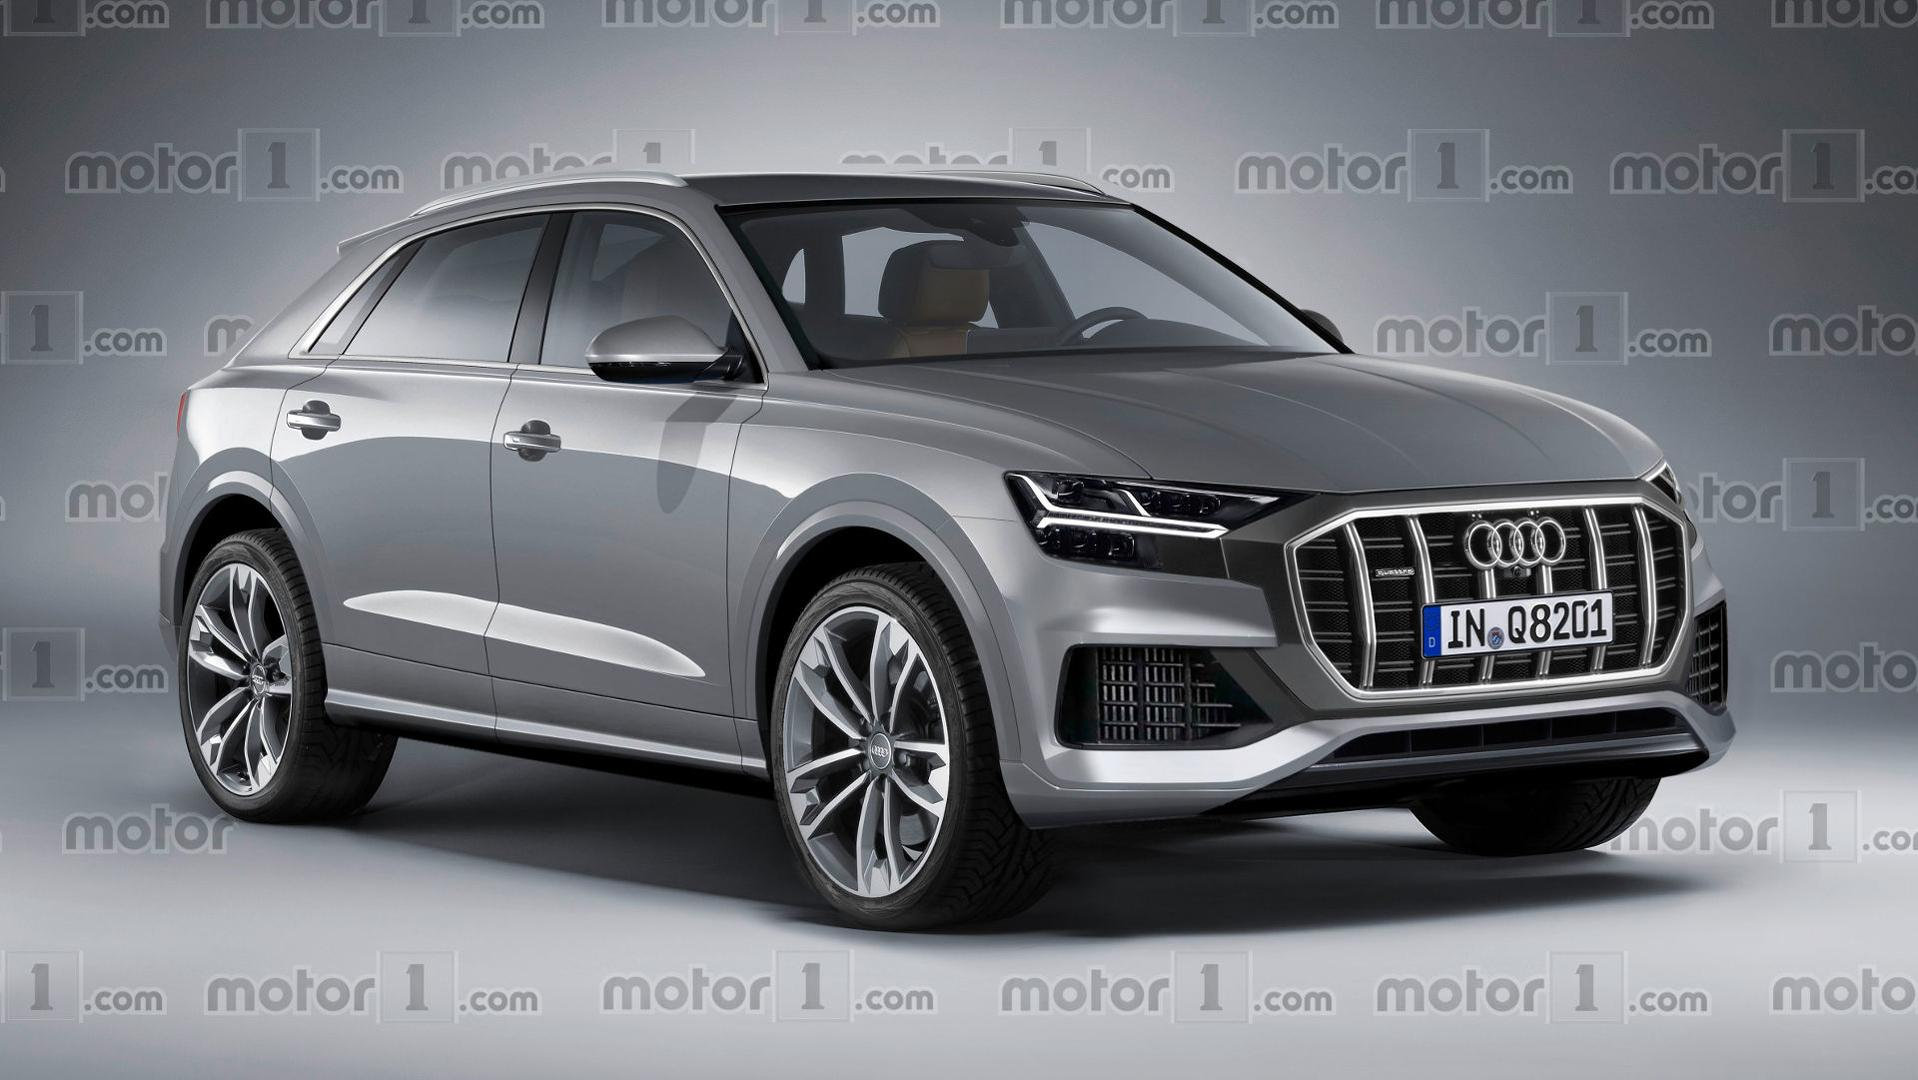 the has by generation model been second latest pin audi unveiled suv models vehicle company